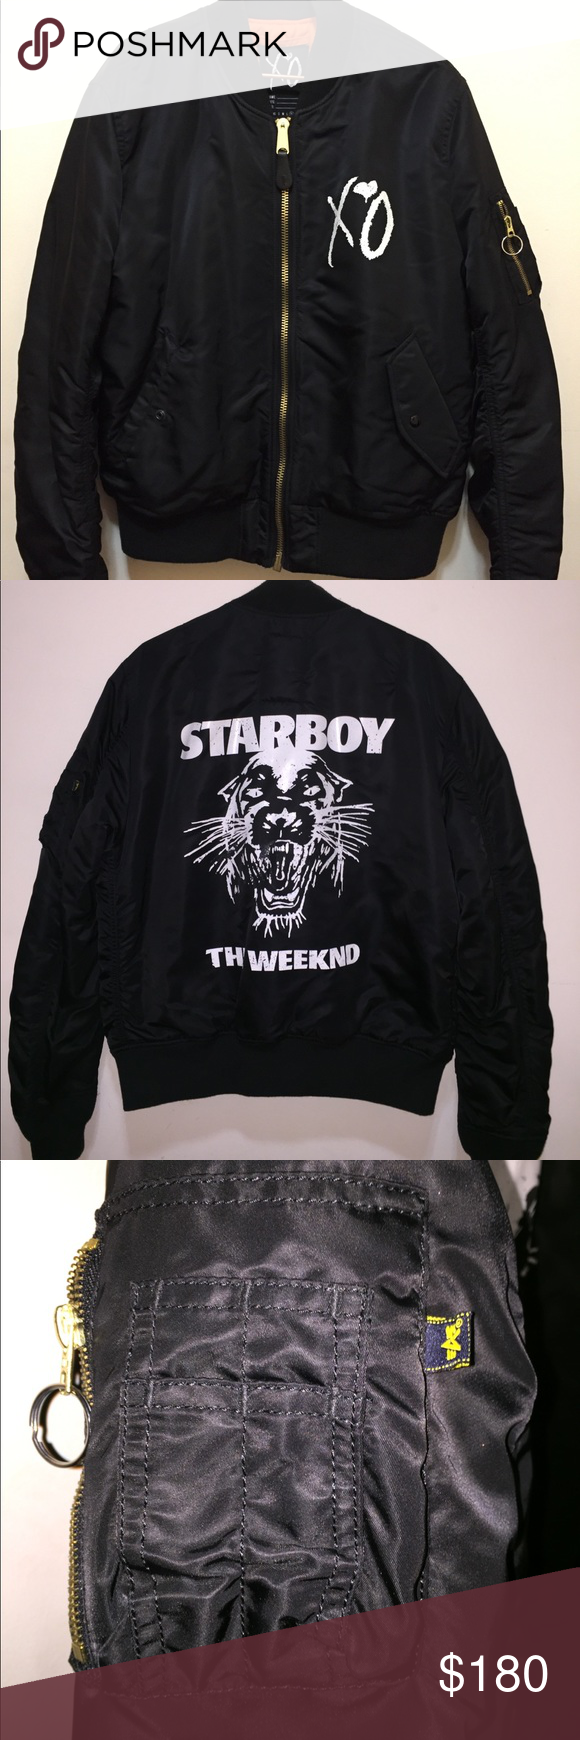 Xo Starboy Panther Bomber Jacket The Weeknd Xl Bomber Jacket Jackets Puma Jackets [ 1740 x 580 Pixel ]